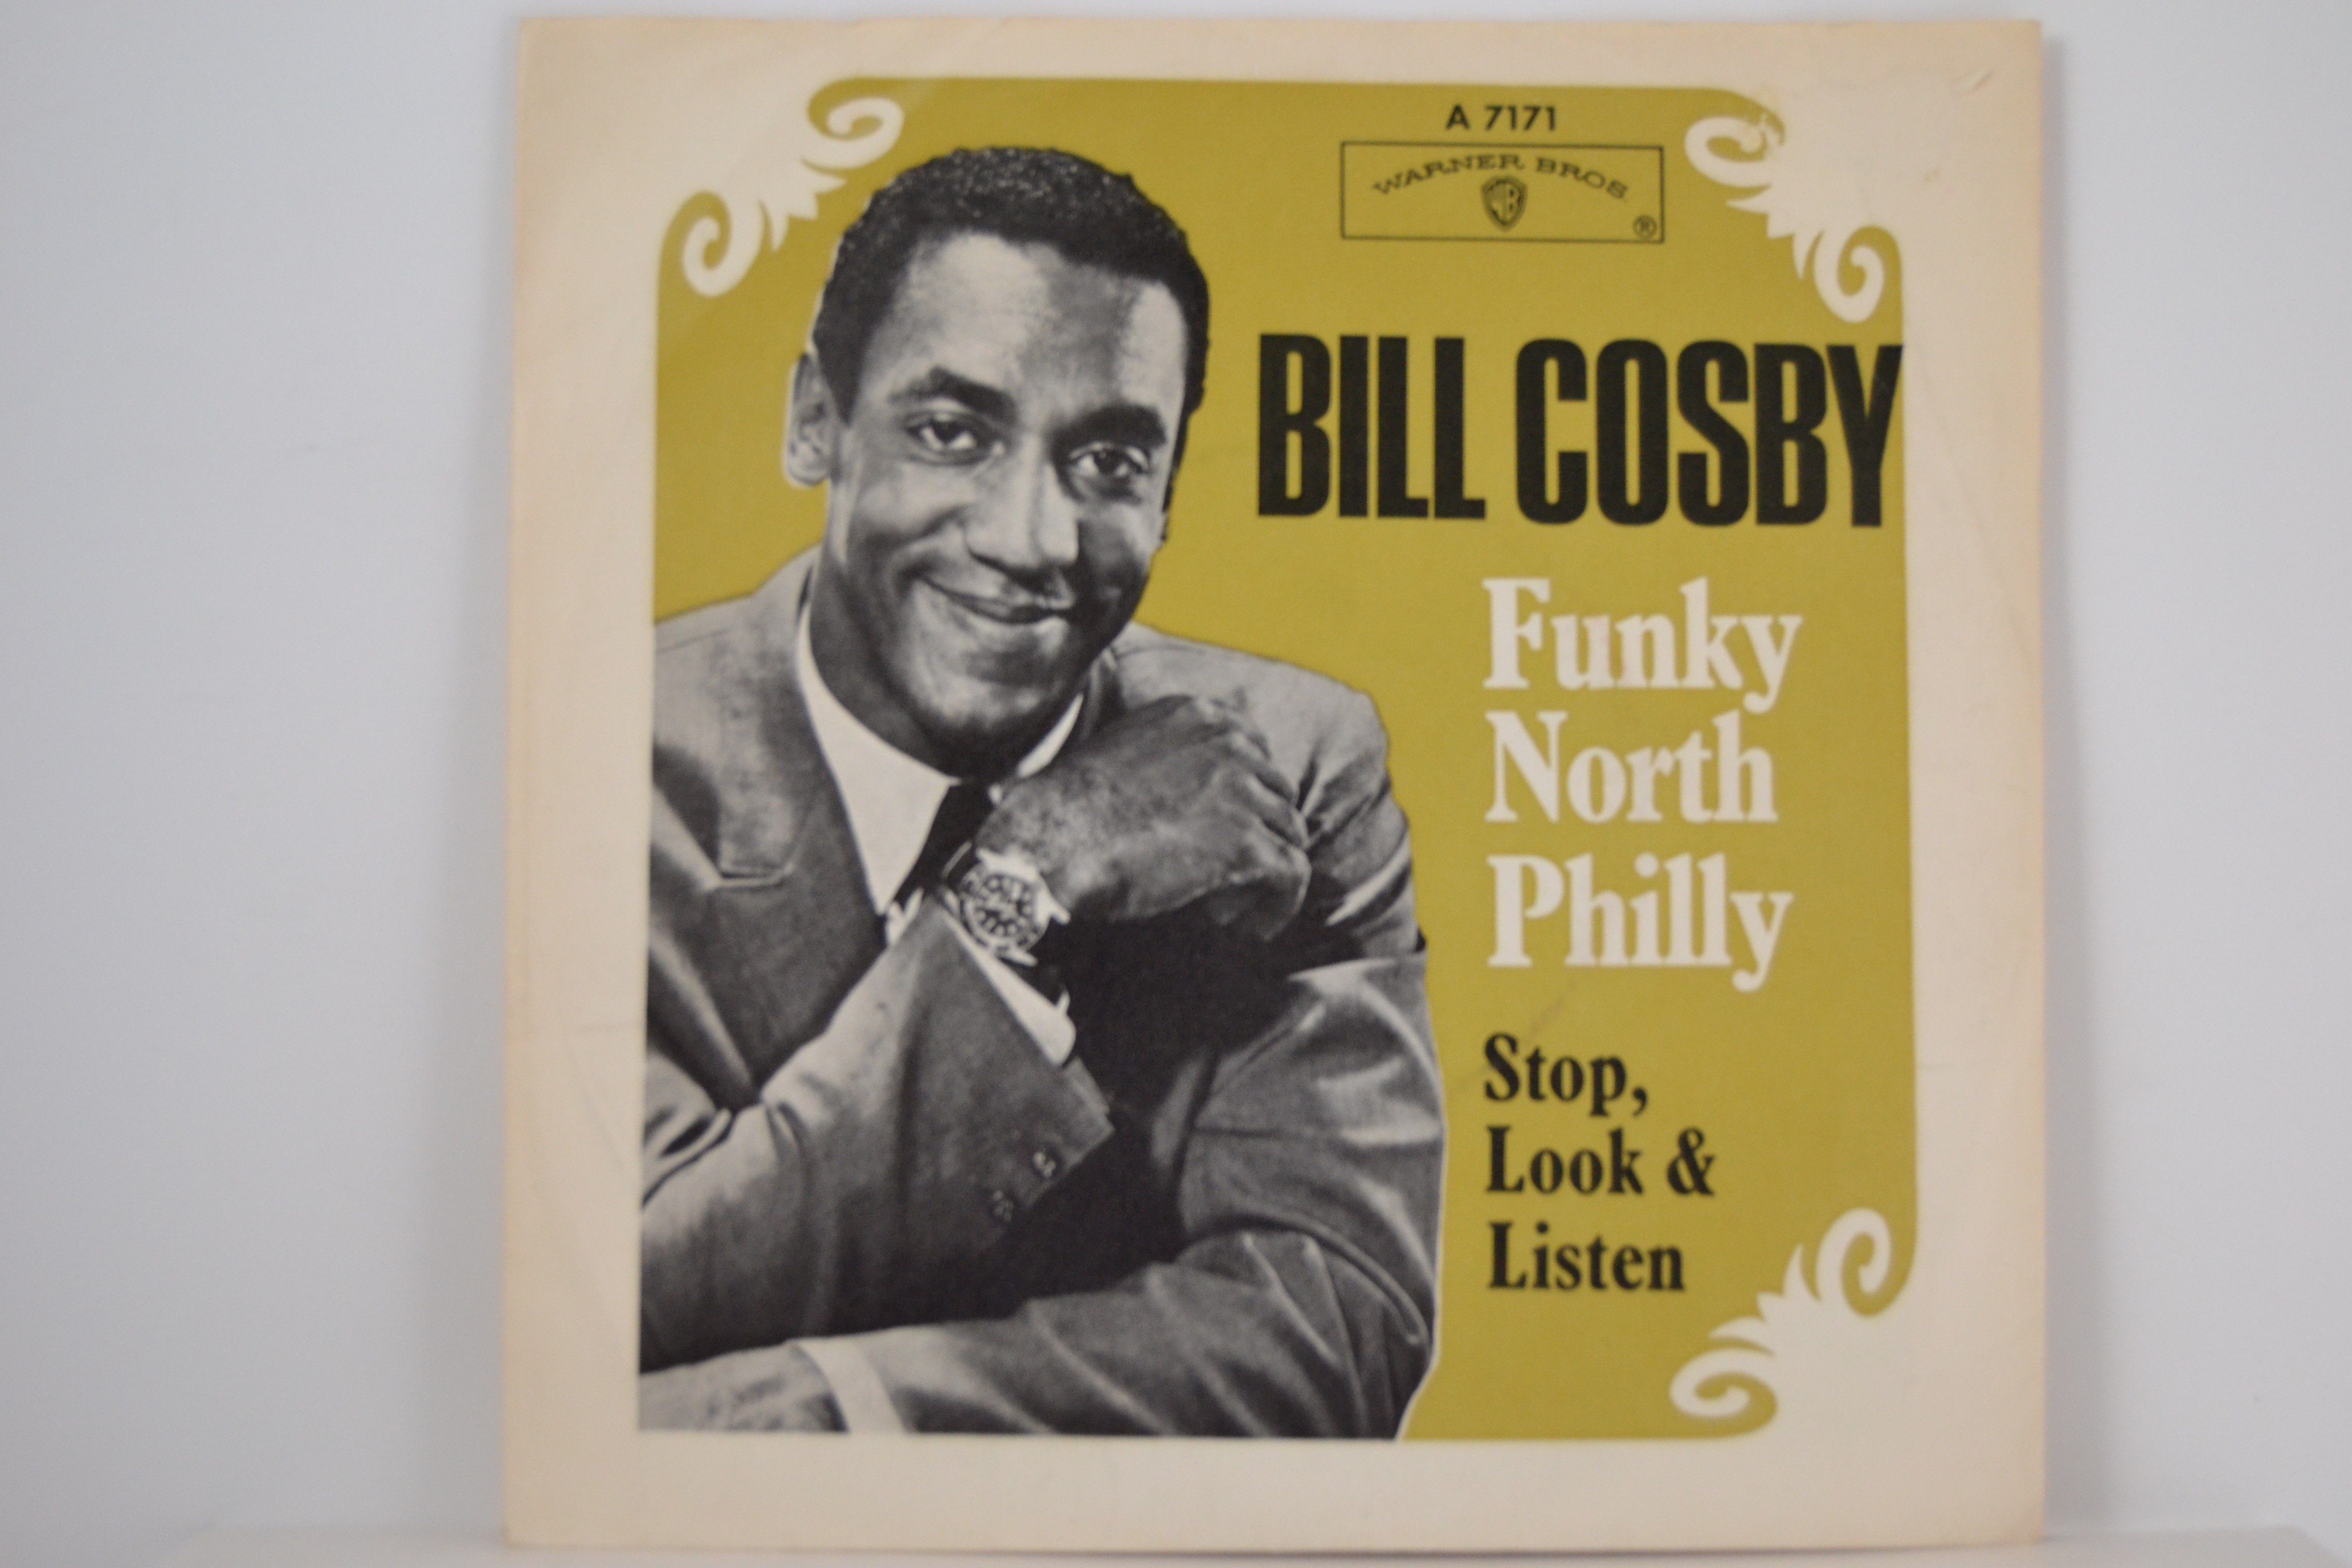 BILL COSBY : Funky north Philly / Stop, look & listen